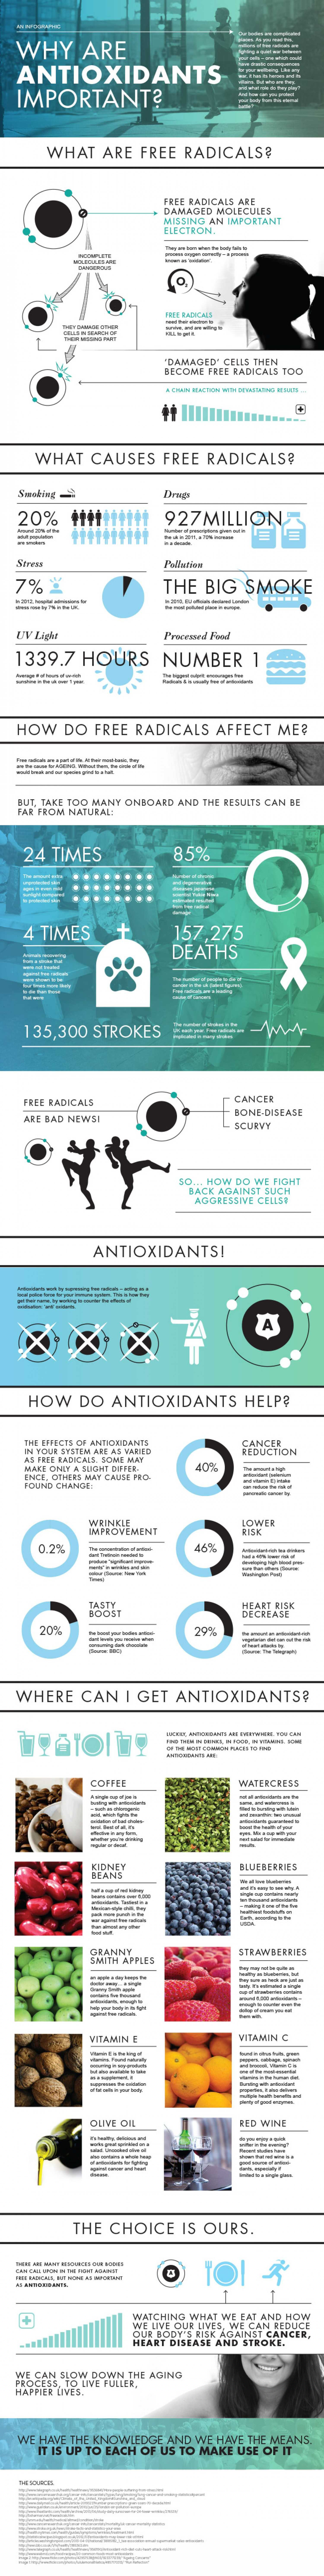 Why Are Antioxidants Important